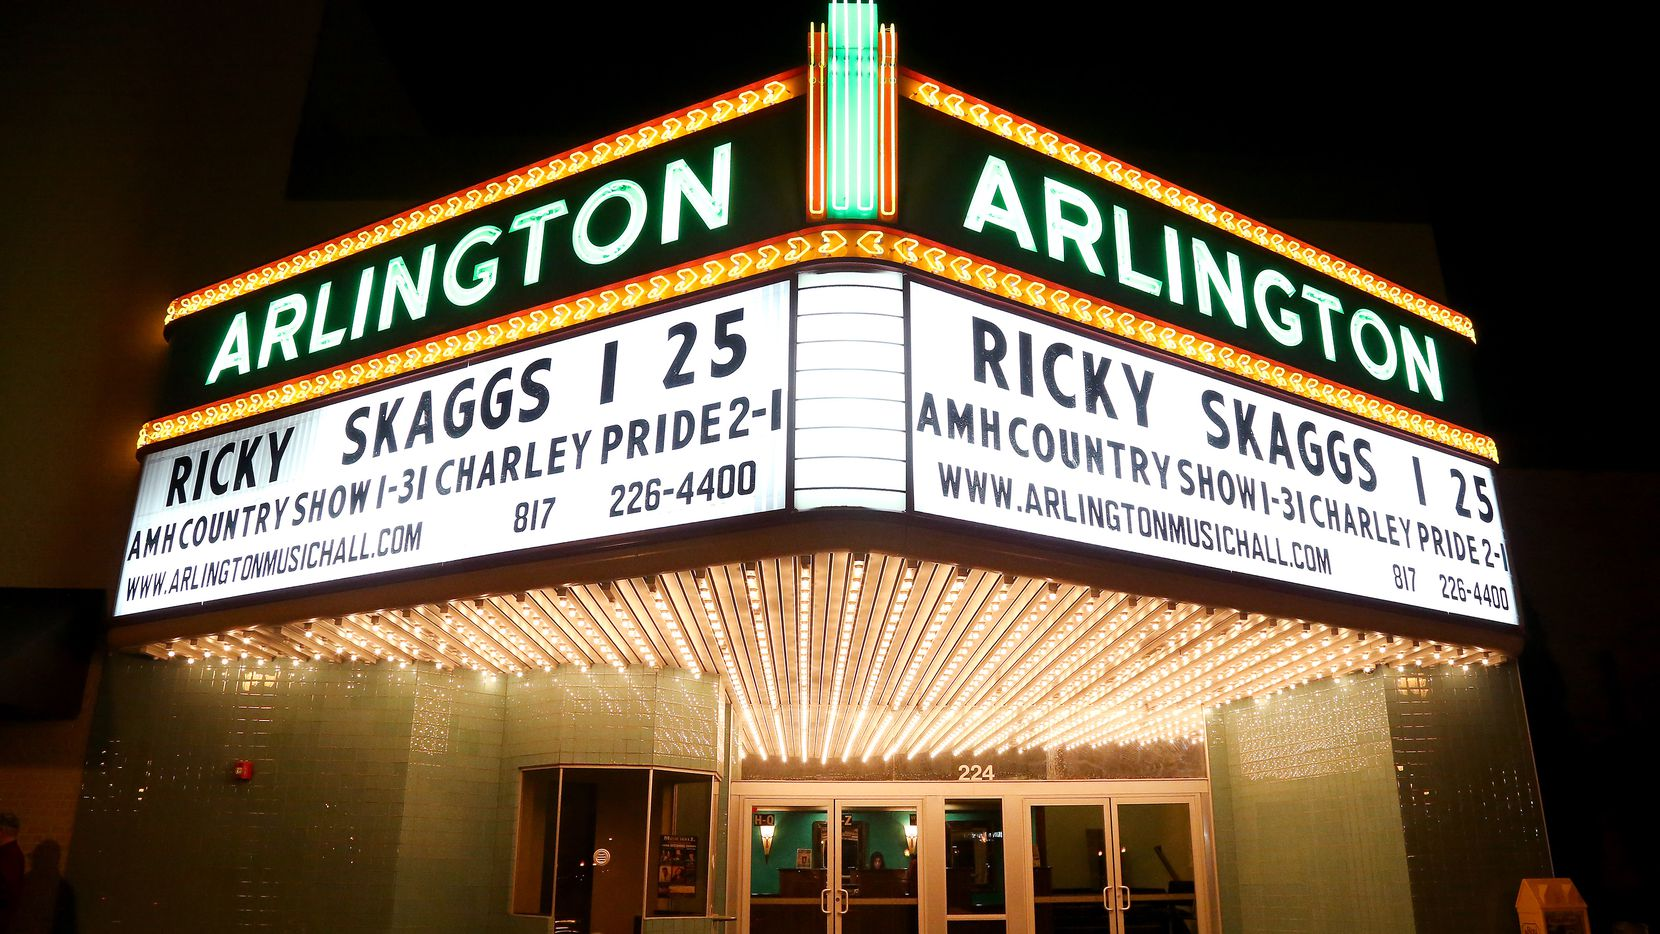 This January 2014 file photo shows the marquee for a Ricky Skaggs and Kentucky Thunder concert at Arlington Music Hall in Arlington, Texas.